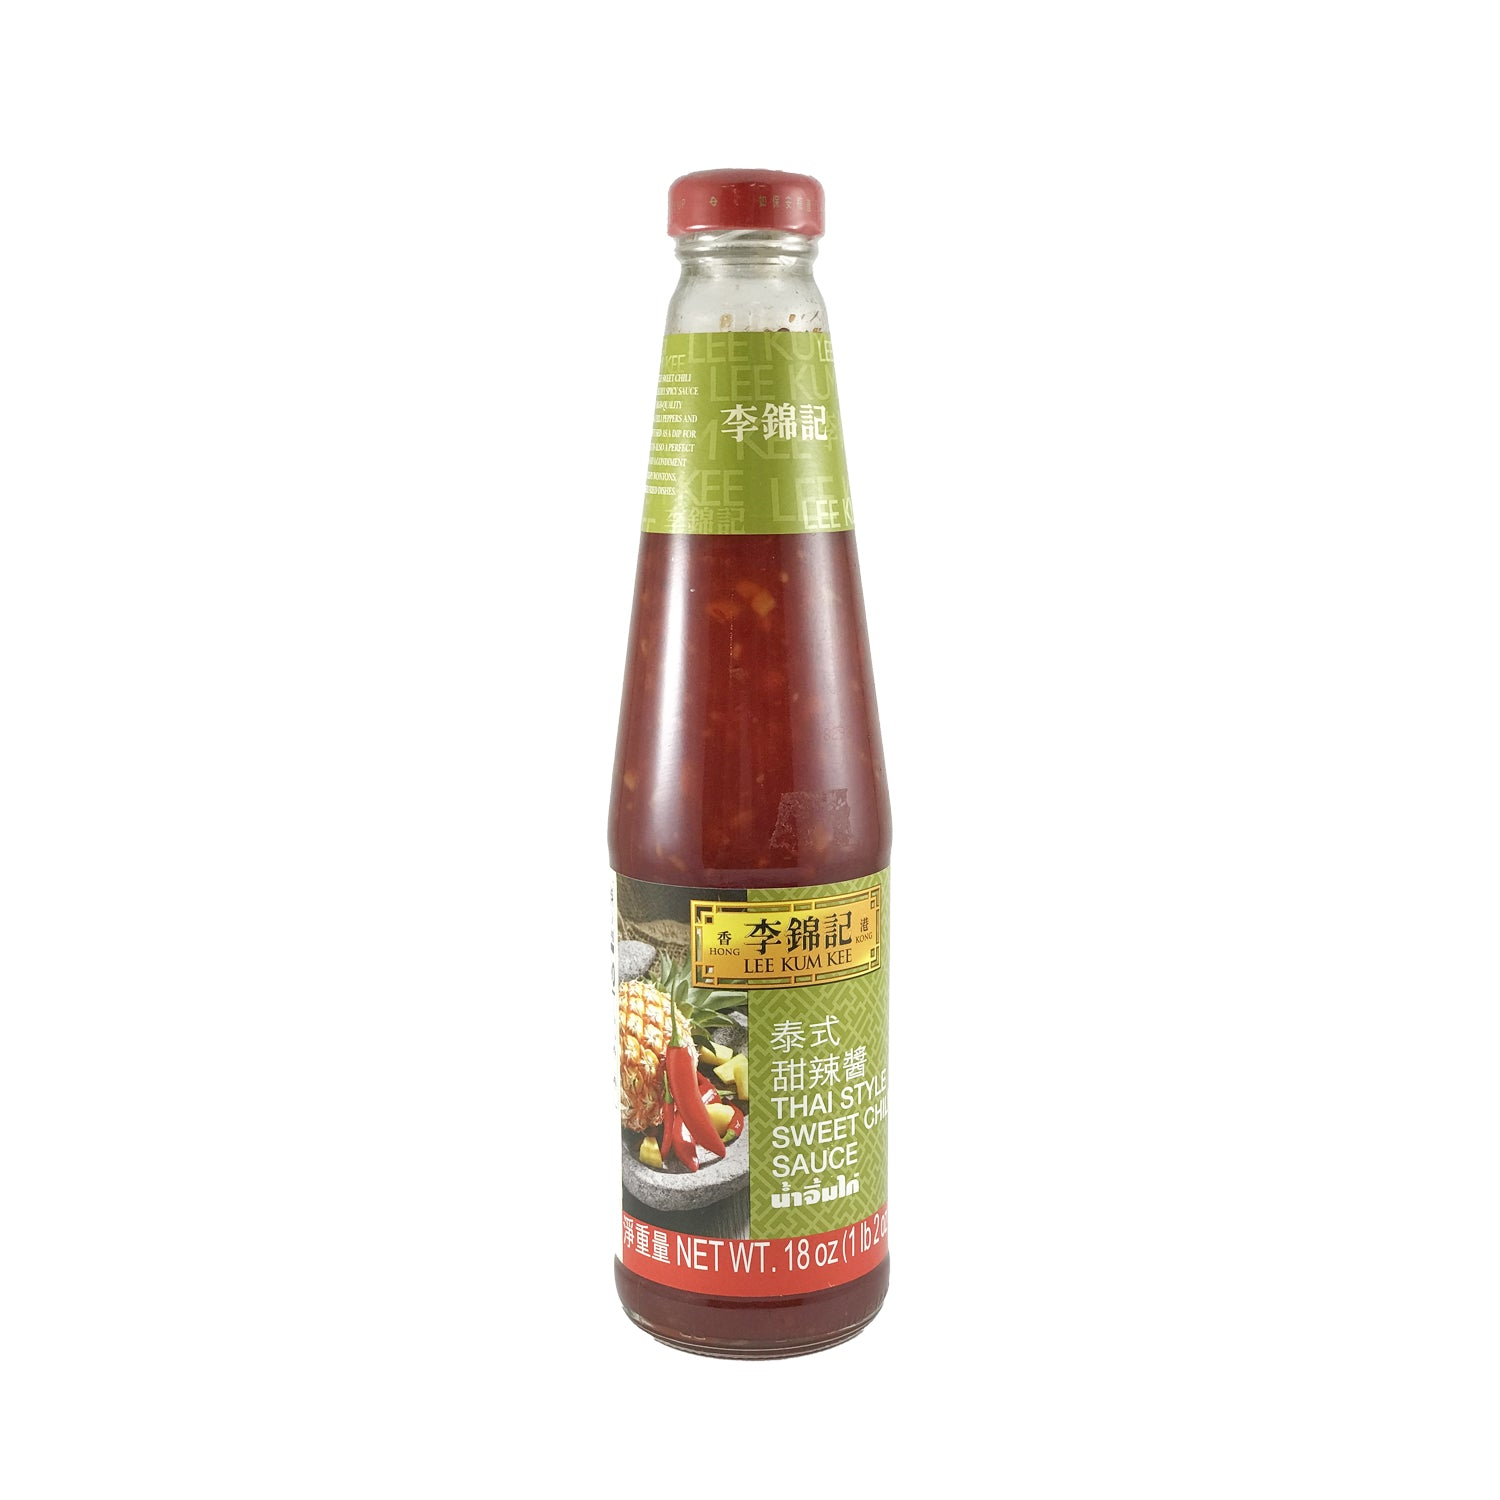 Lee Kum Kee Thai Style Sweet Chili Sauce 李錦記 泰式甜辣醬 18oz